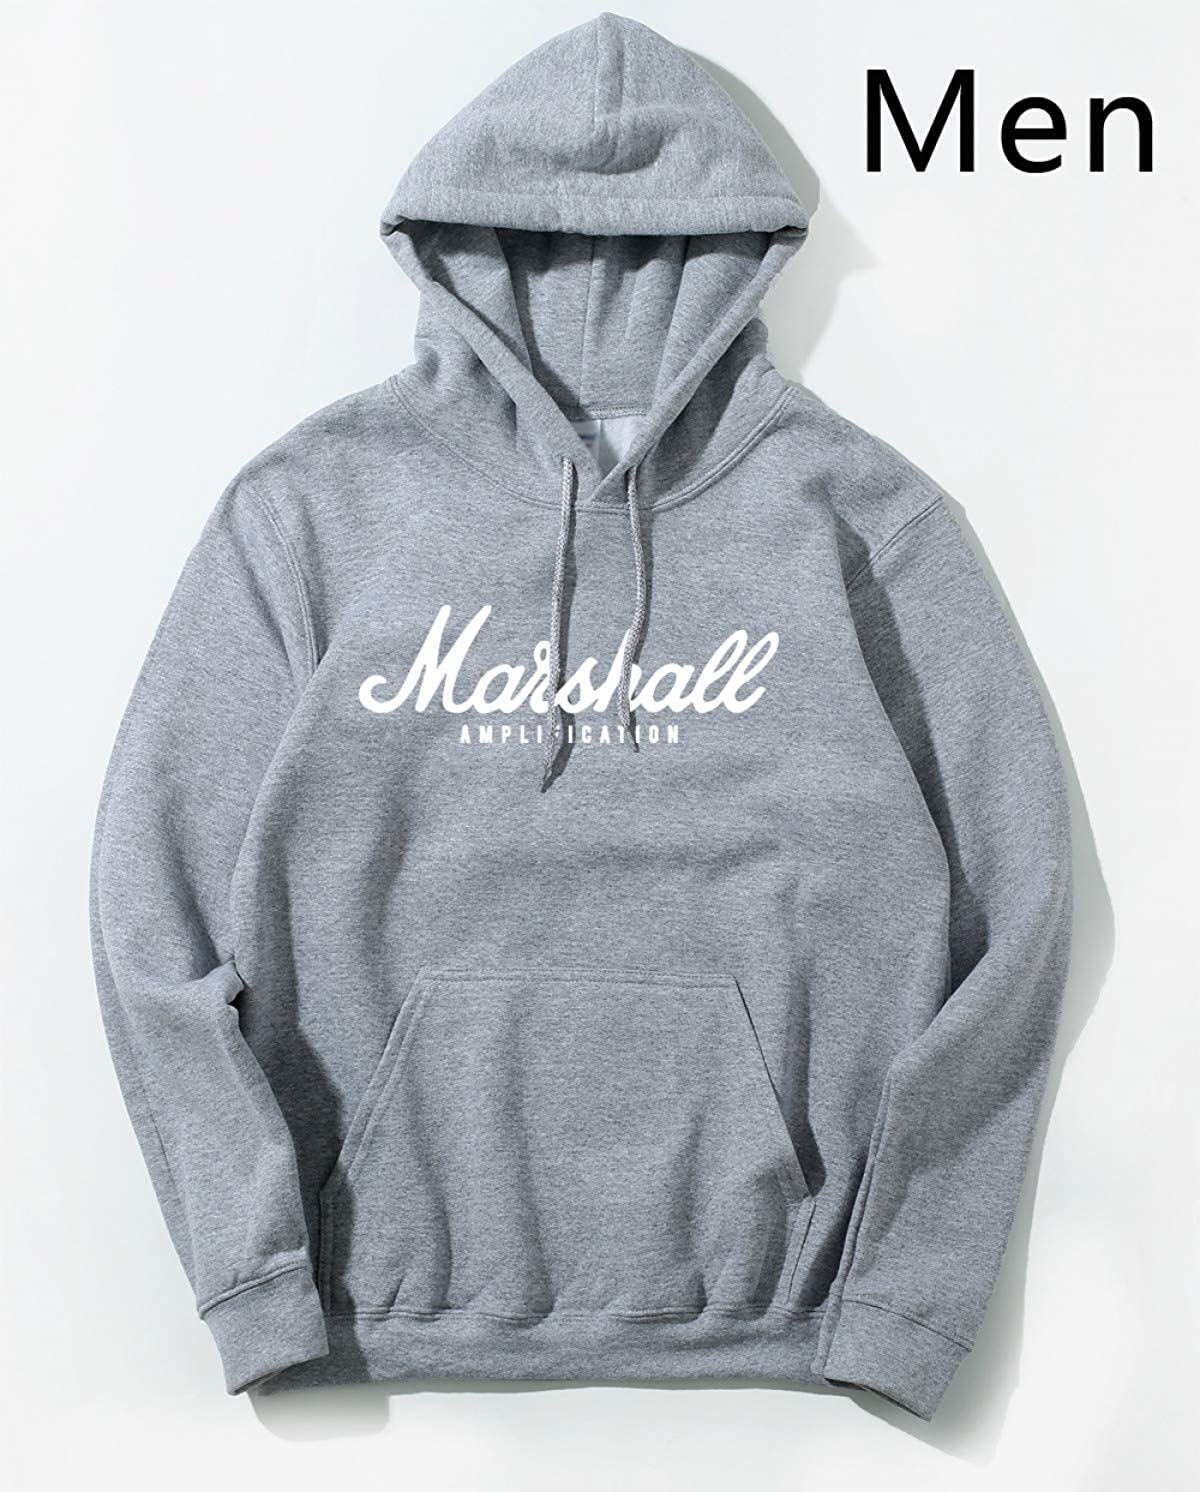 Amazon.com: WEEKEND SHOP Hoodies for Men Hoodie Men Hoodies Mens Sweatshirt Hip Hop Streetwear Hoody Gray: Clothing